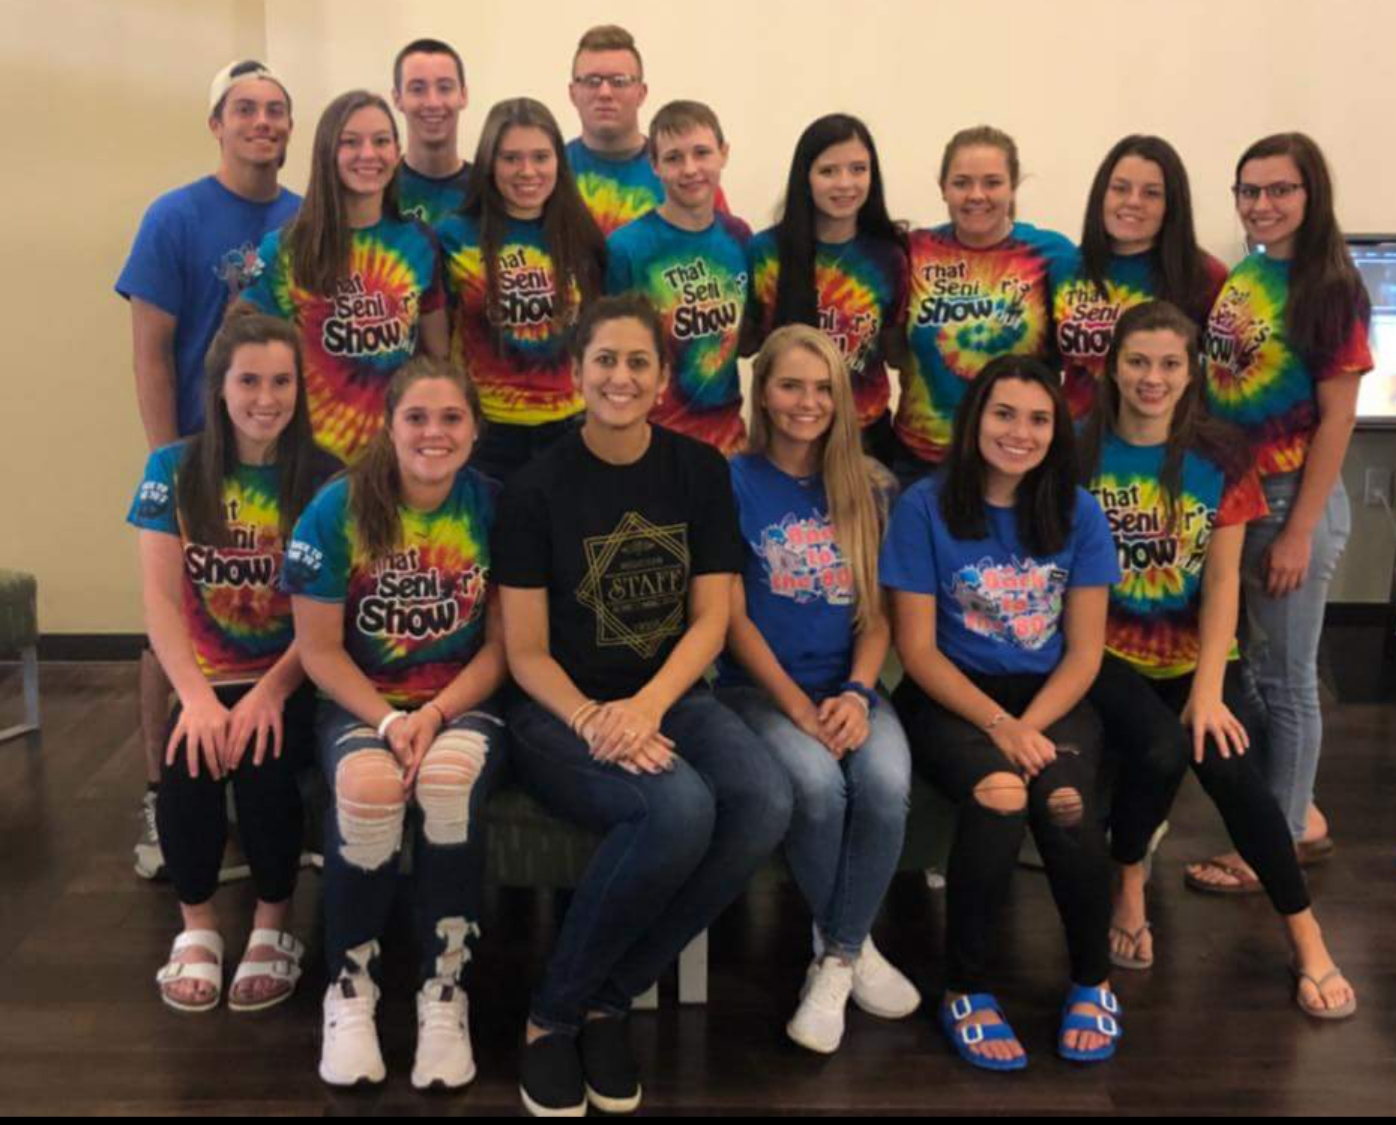 Entrepreneurship class posses for picture in their homecoming shirts which they made for students at Meridian High School.